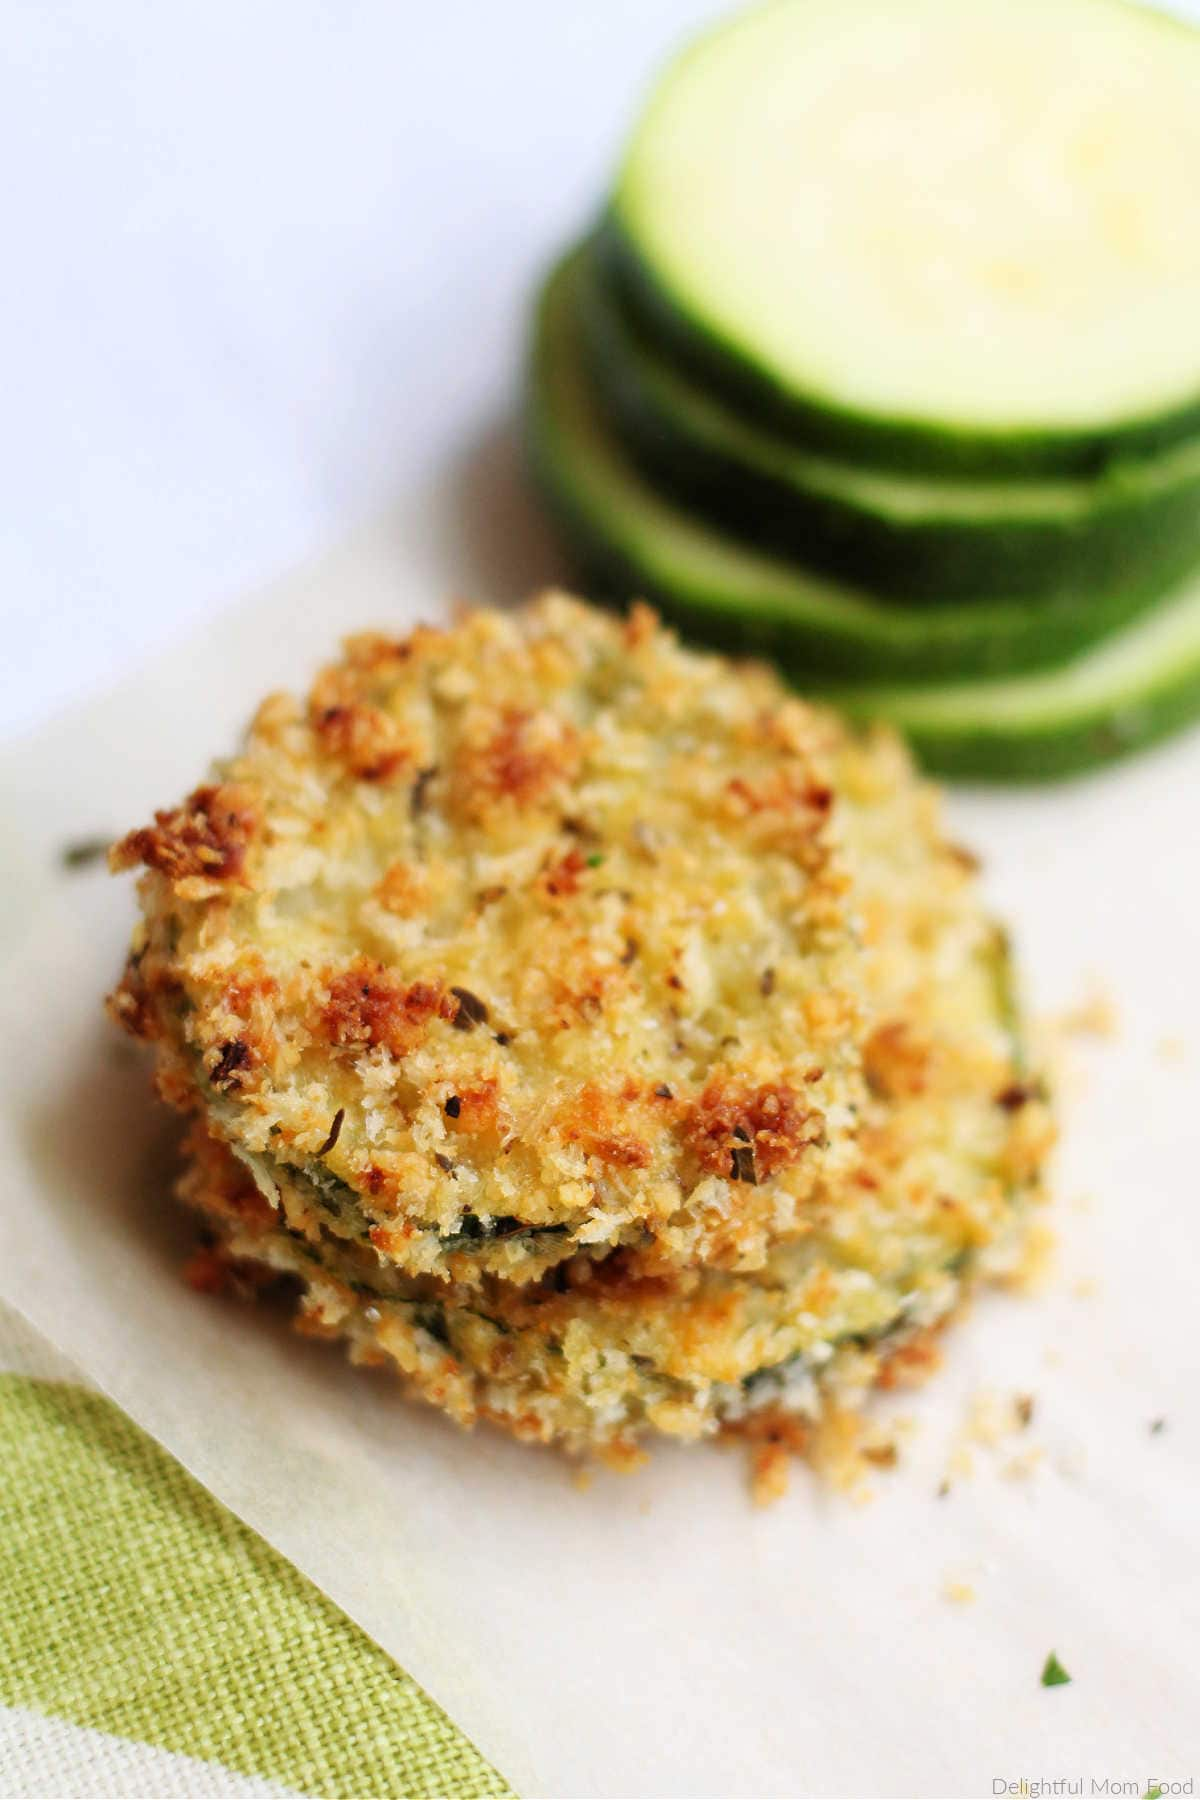 breaded parmesan zucchini fries chips crisps recipe that are gluten free